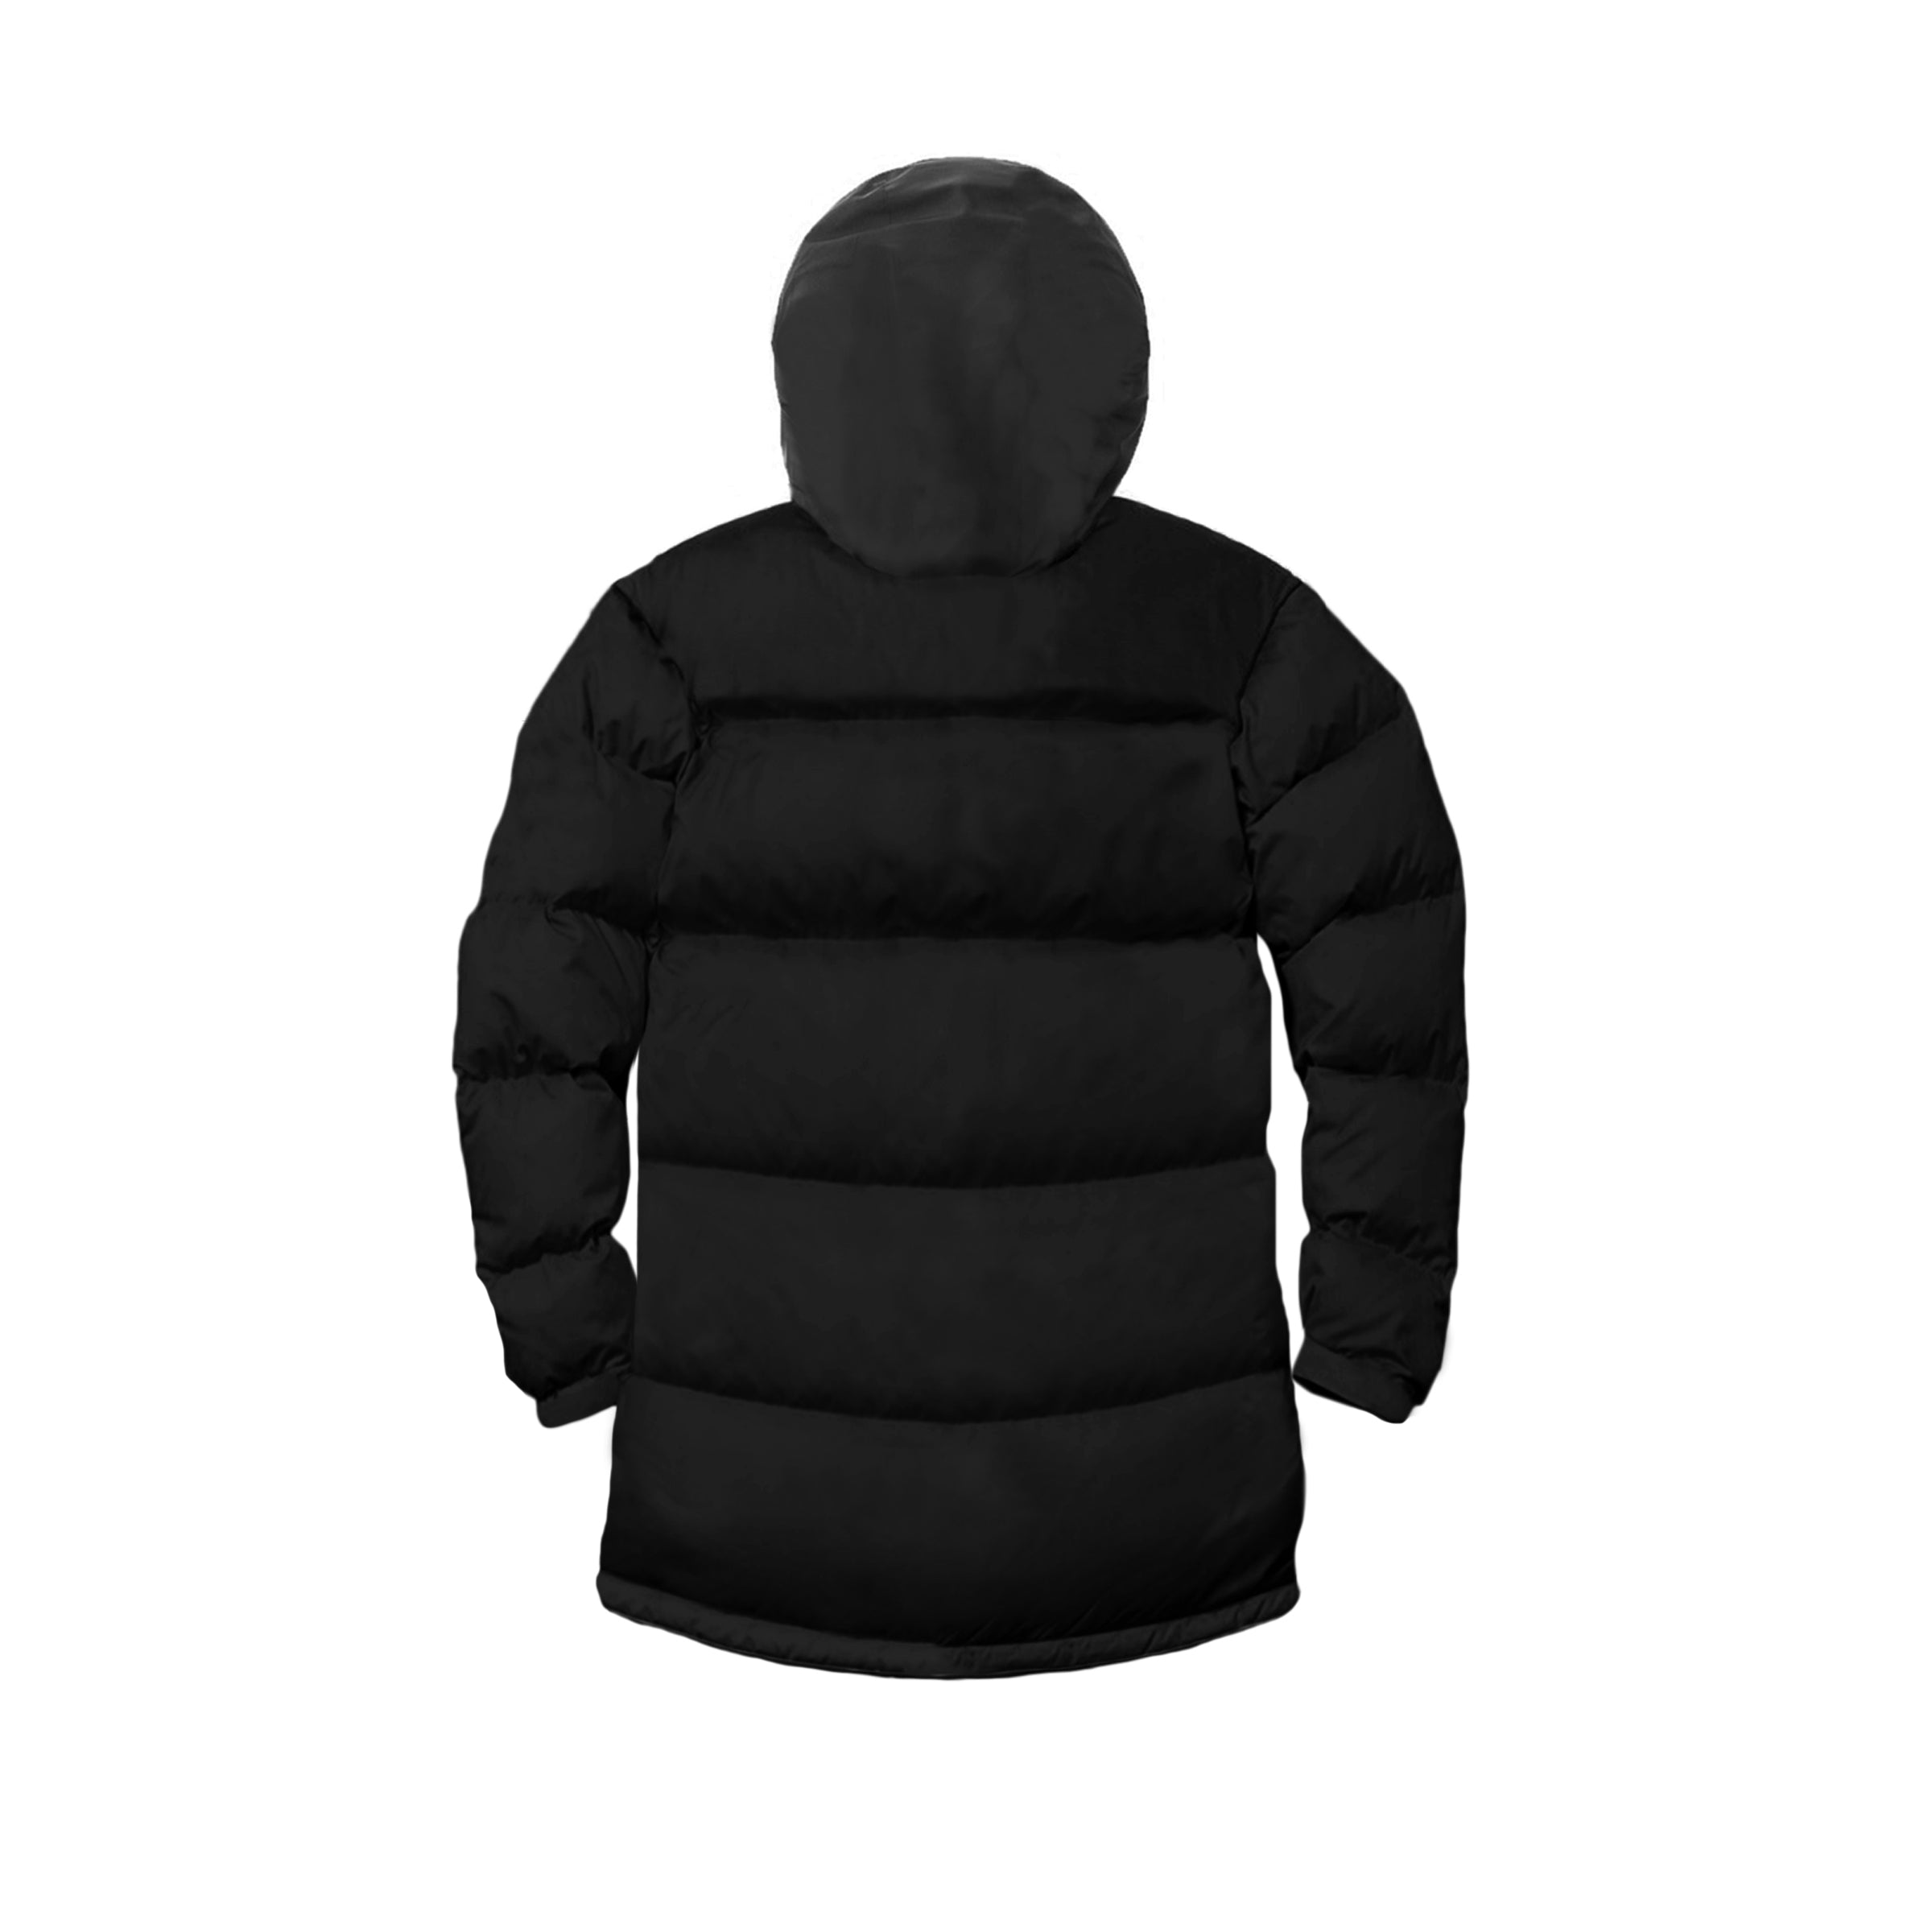 Puffer Jacket - Black image 8